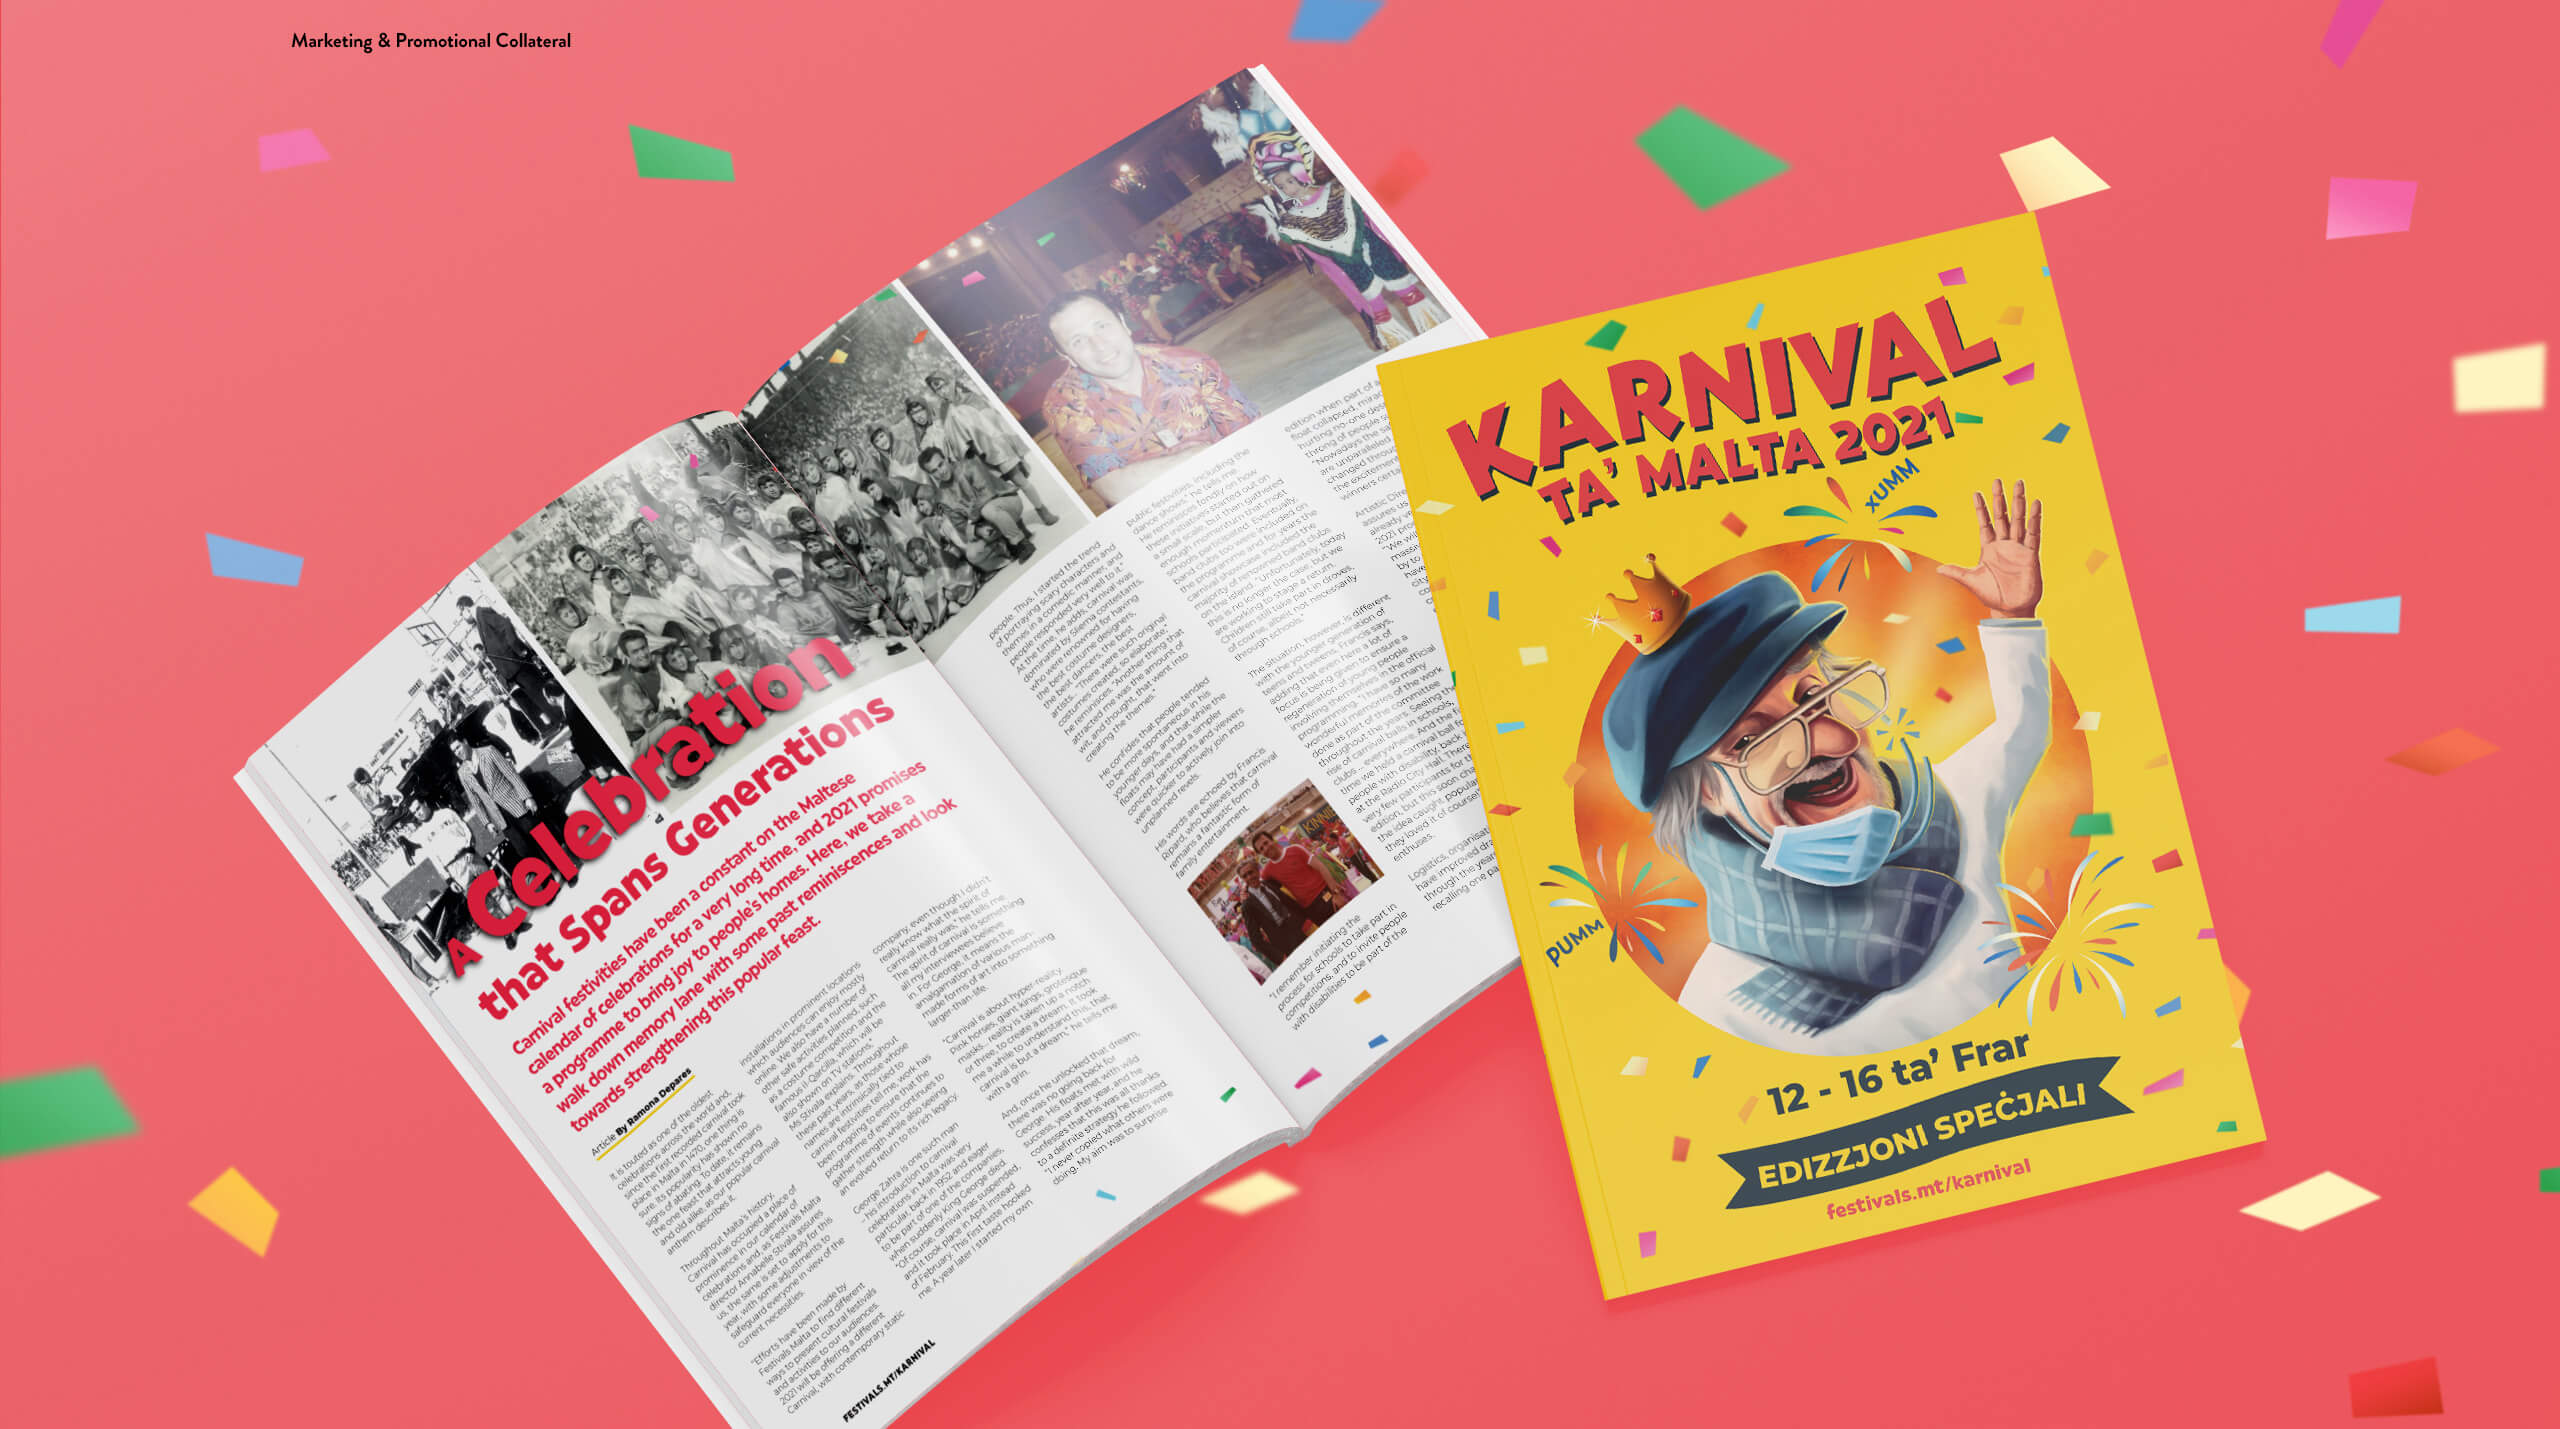 Festivals-Malta---Behance-2-slices-2_01 case study